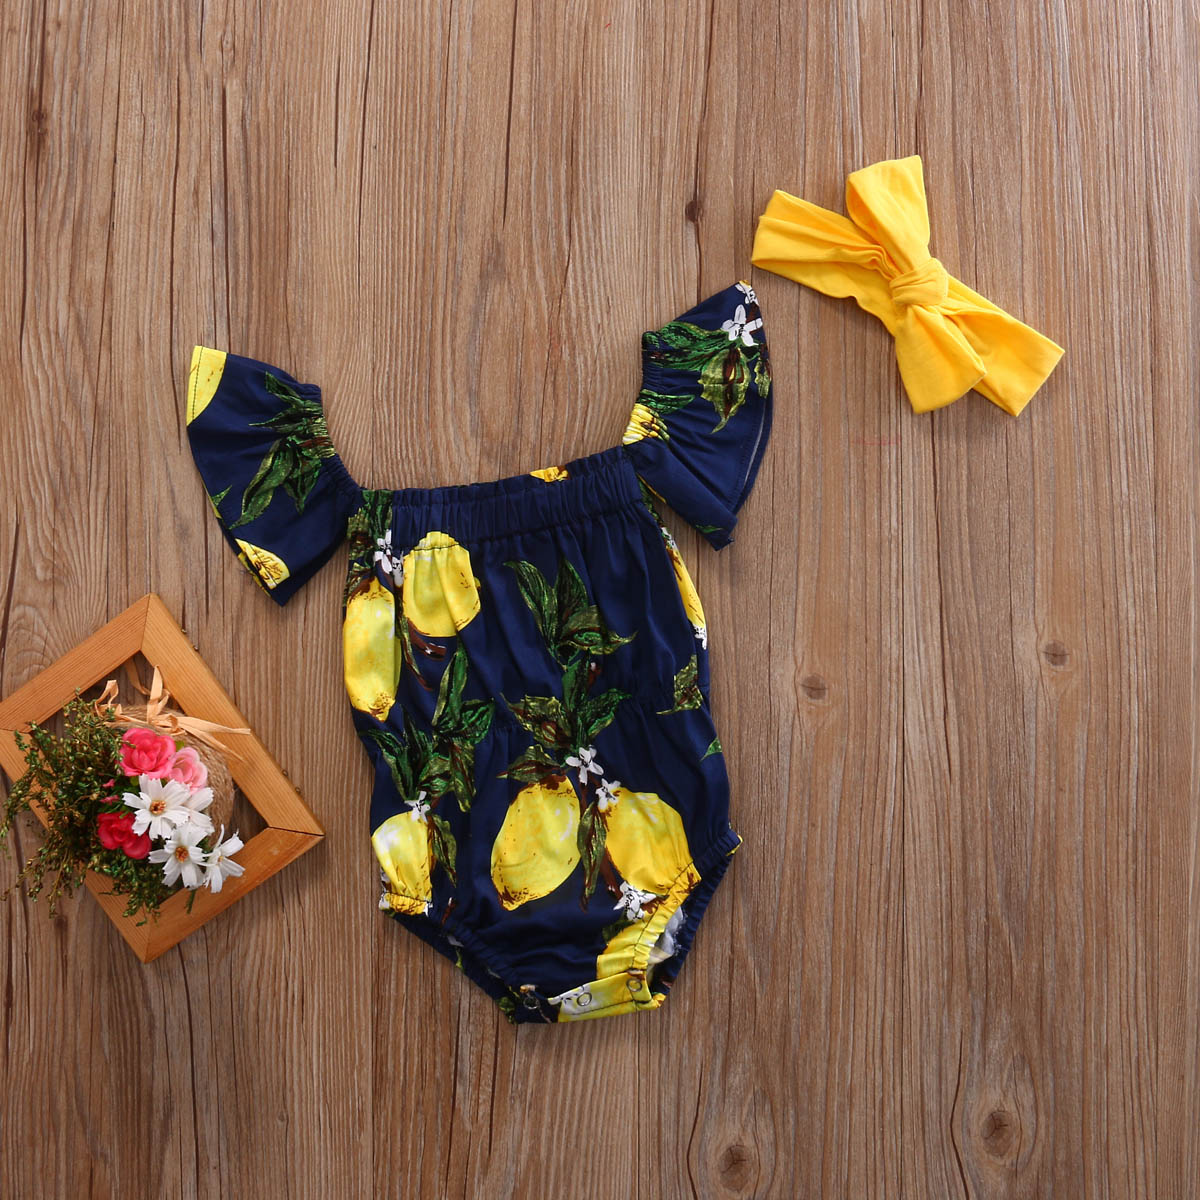 Cute-Newborn-Baby-Girl-Clothes-2017-Summer-Off-shoulder-Pear-Printed-Toddler-Kids-Jumpsuit-Headband-Outfits-Sunsuit-Clothing-2